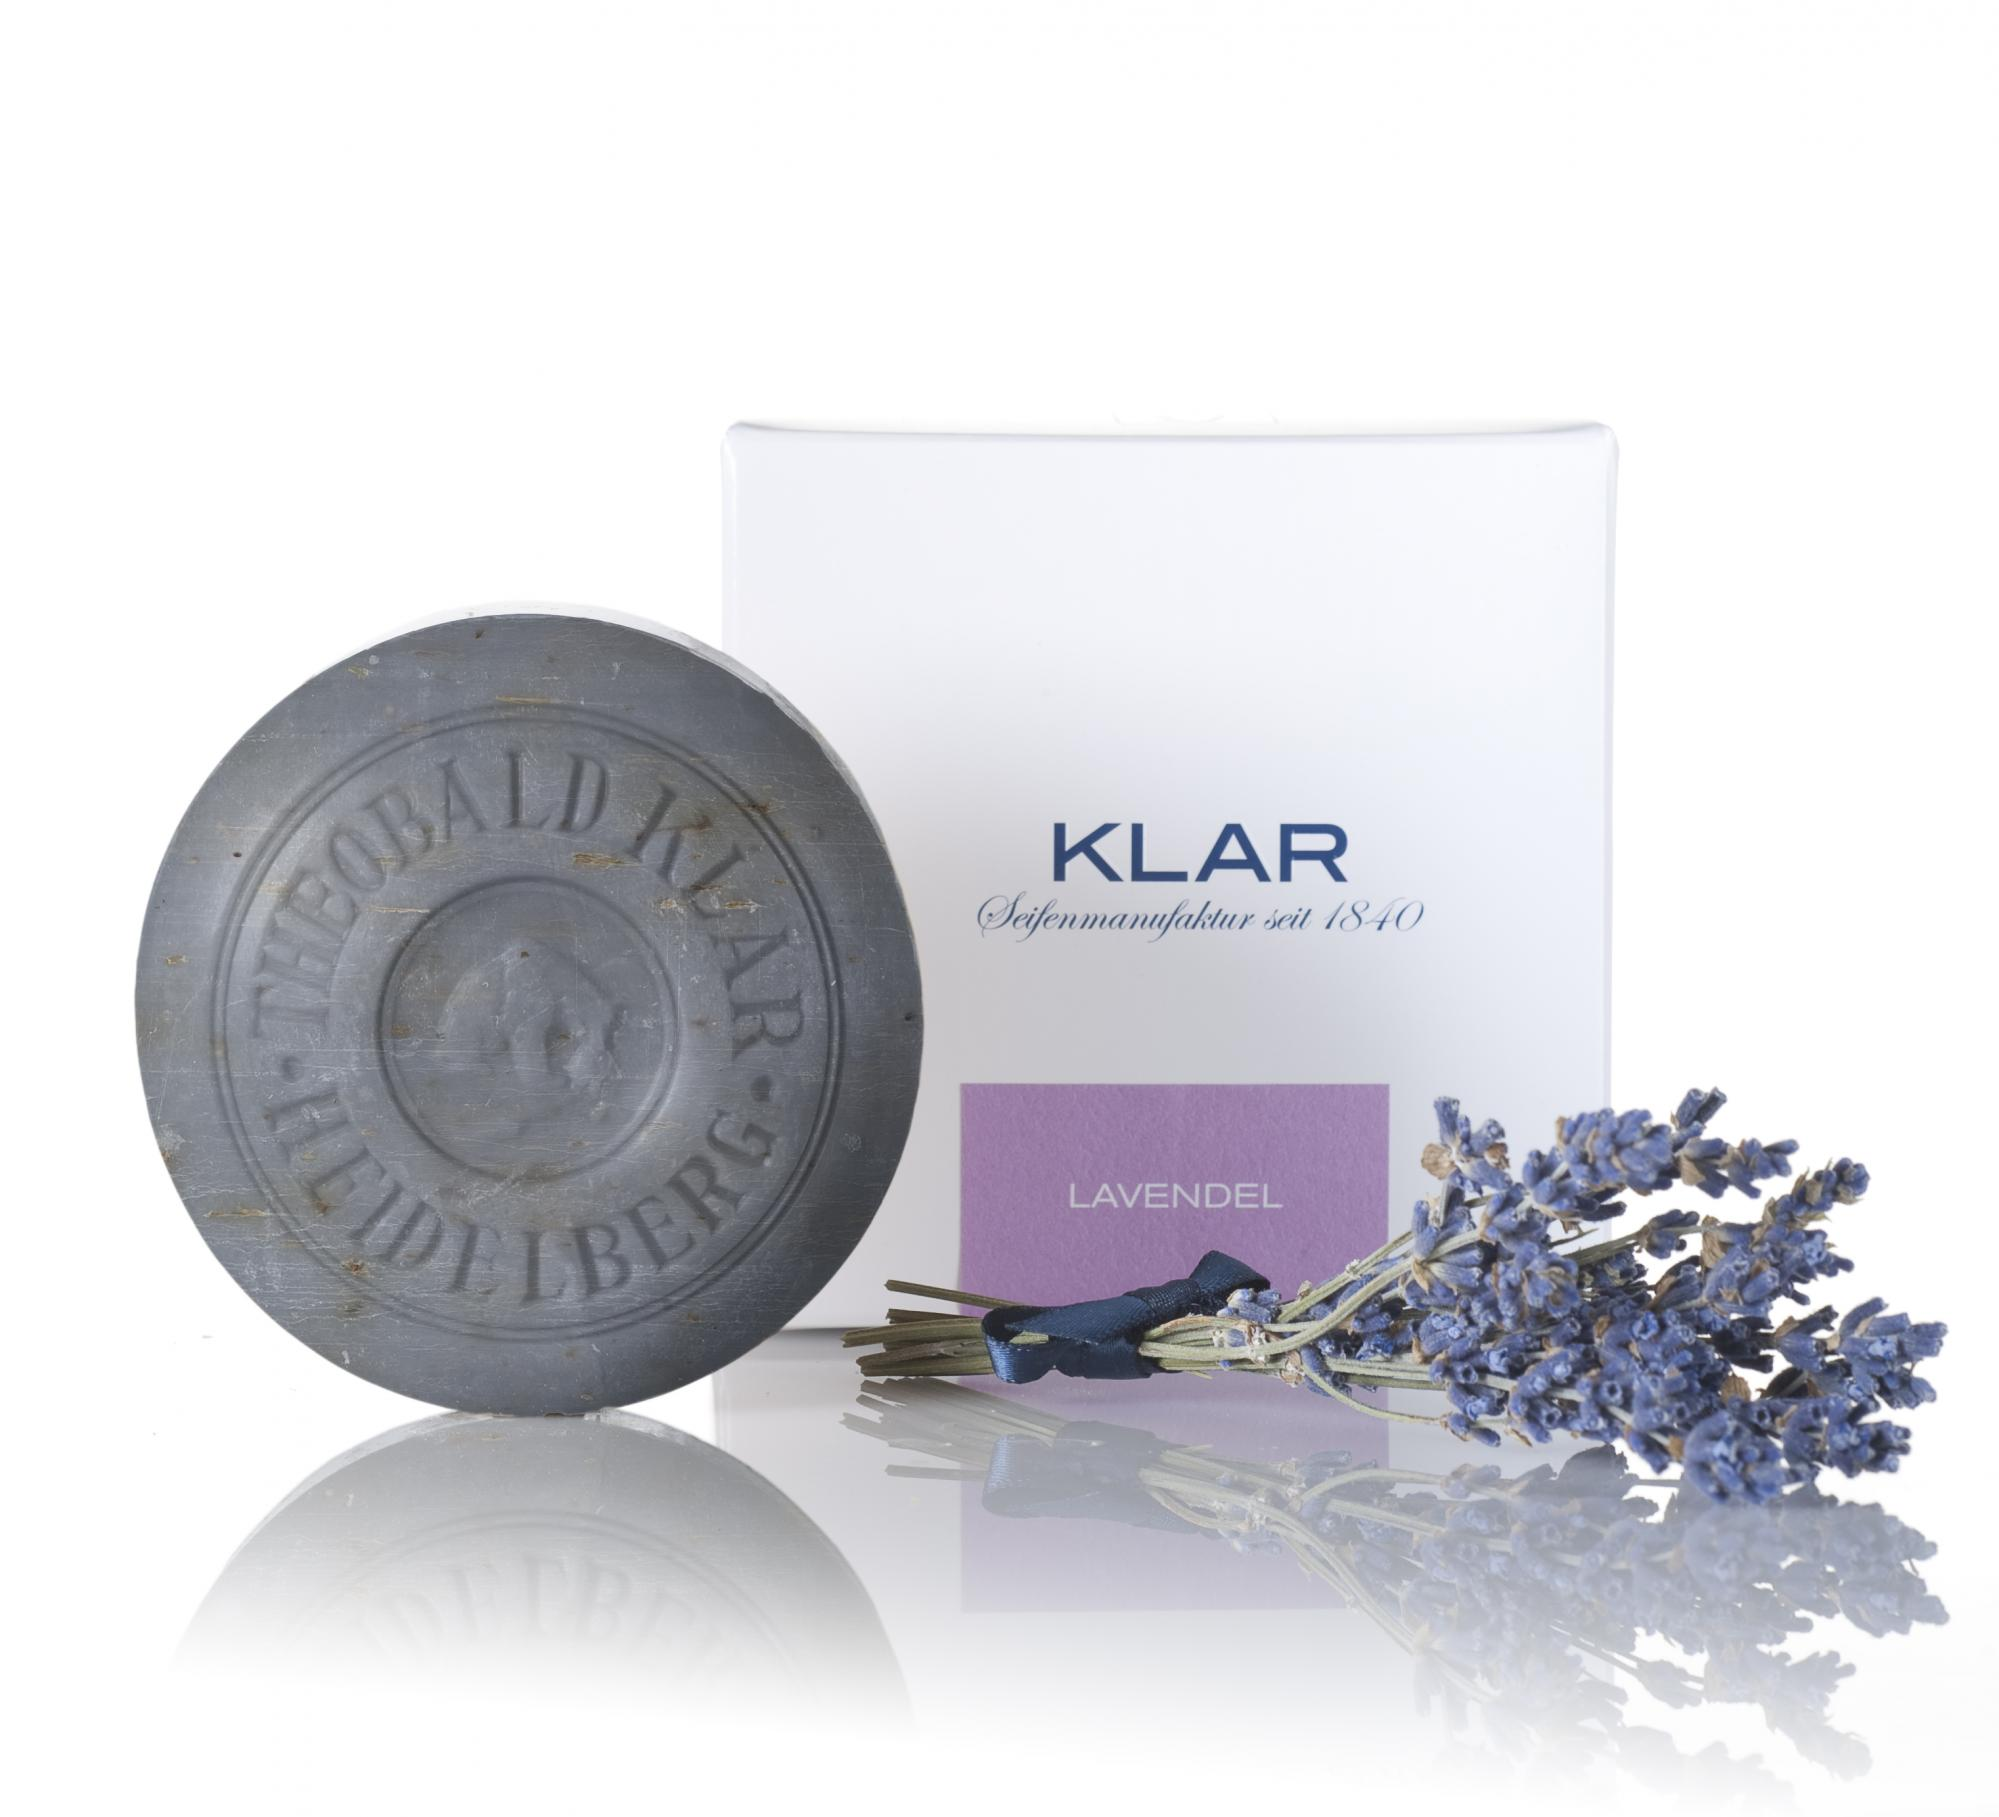 Klar Lavender Essential Oil Soap 150g